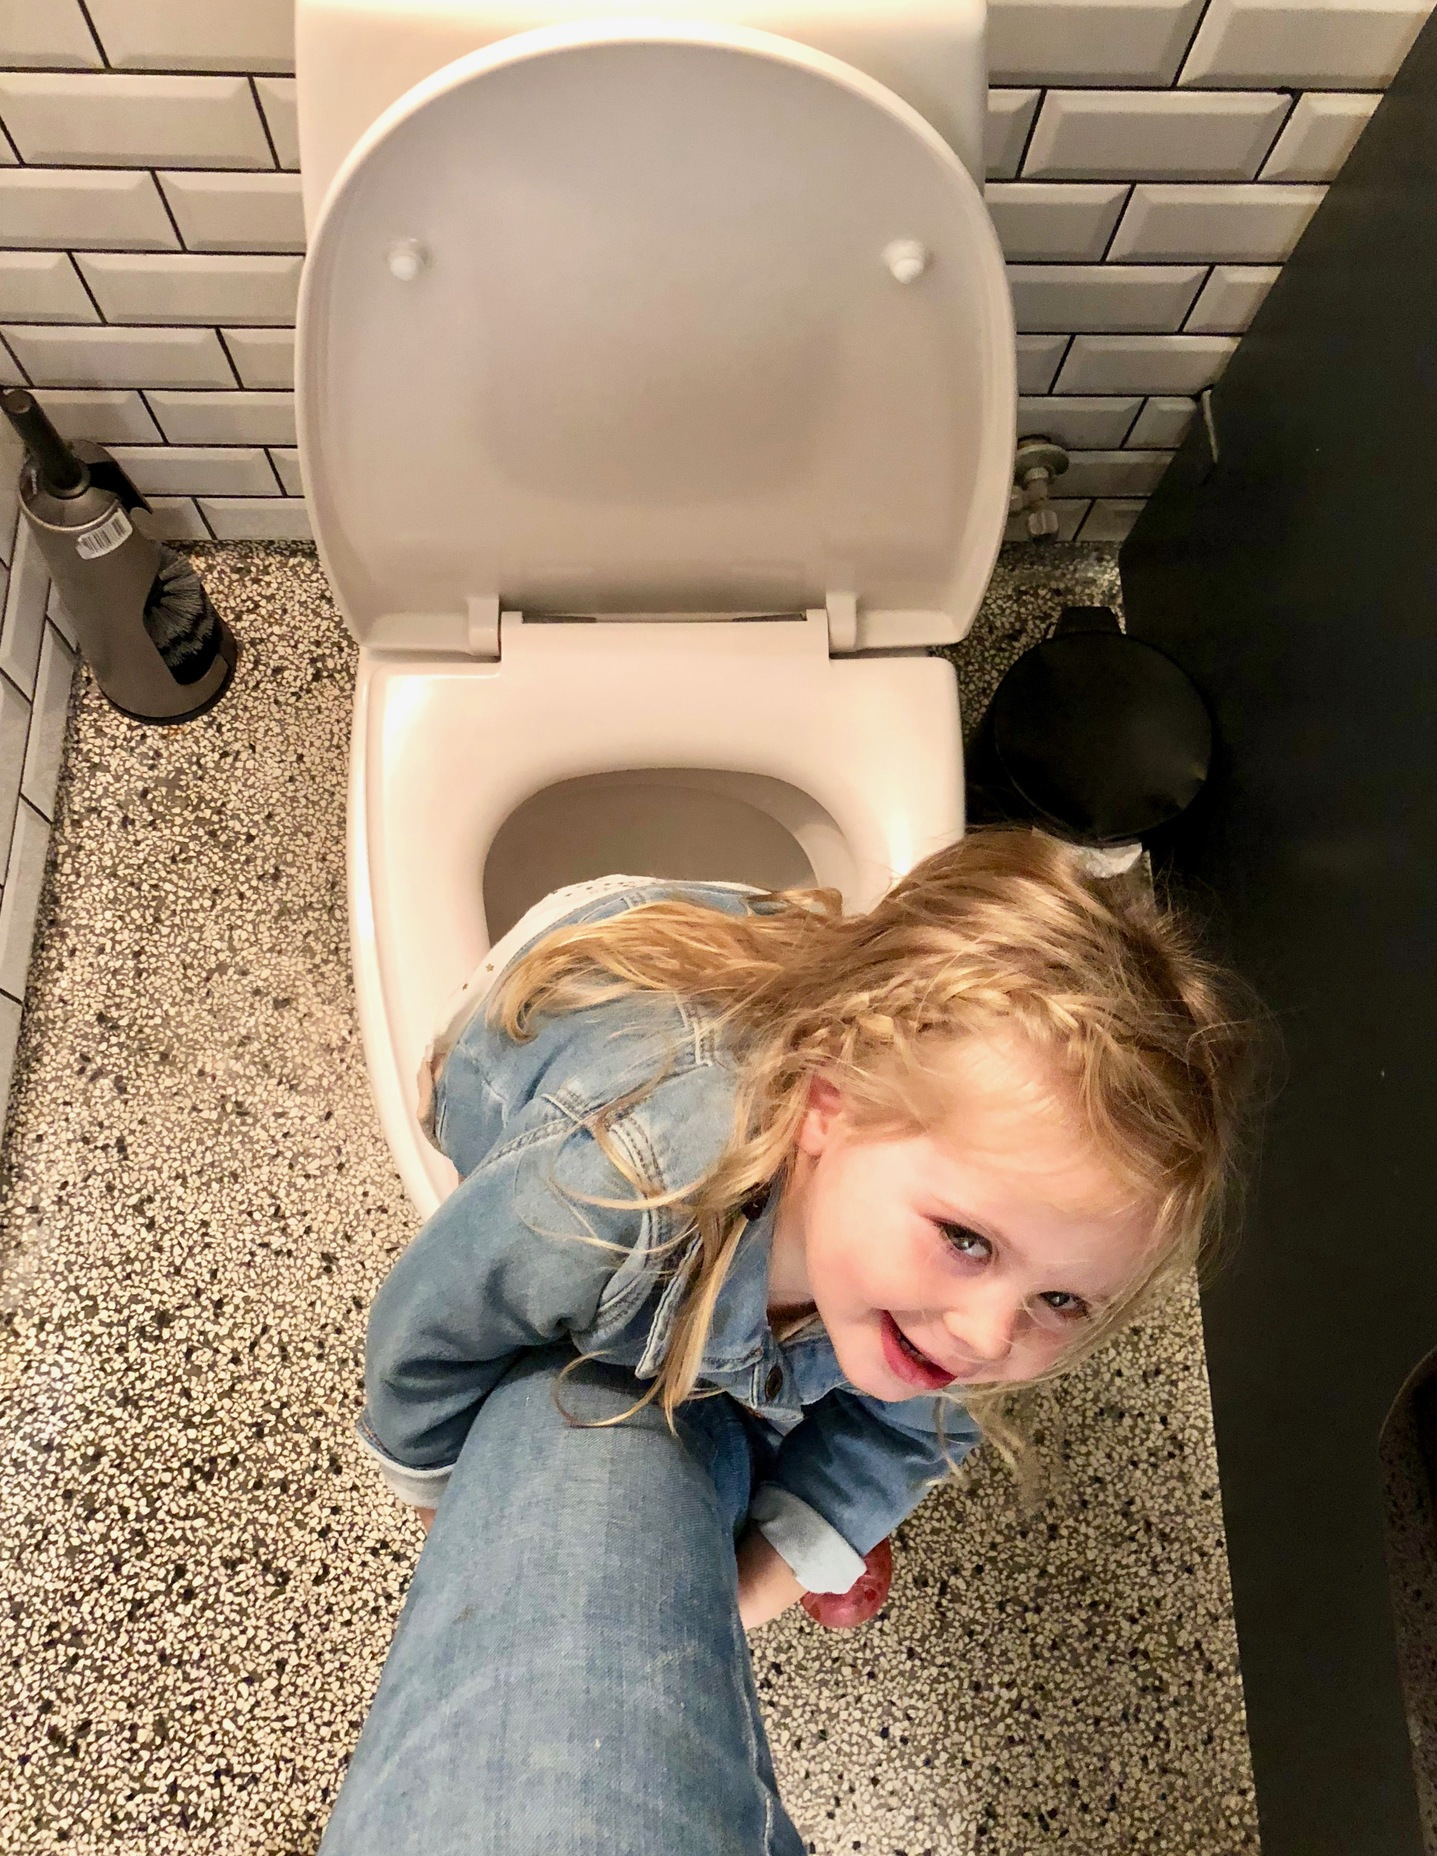 potty training while traveling